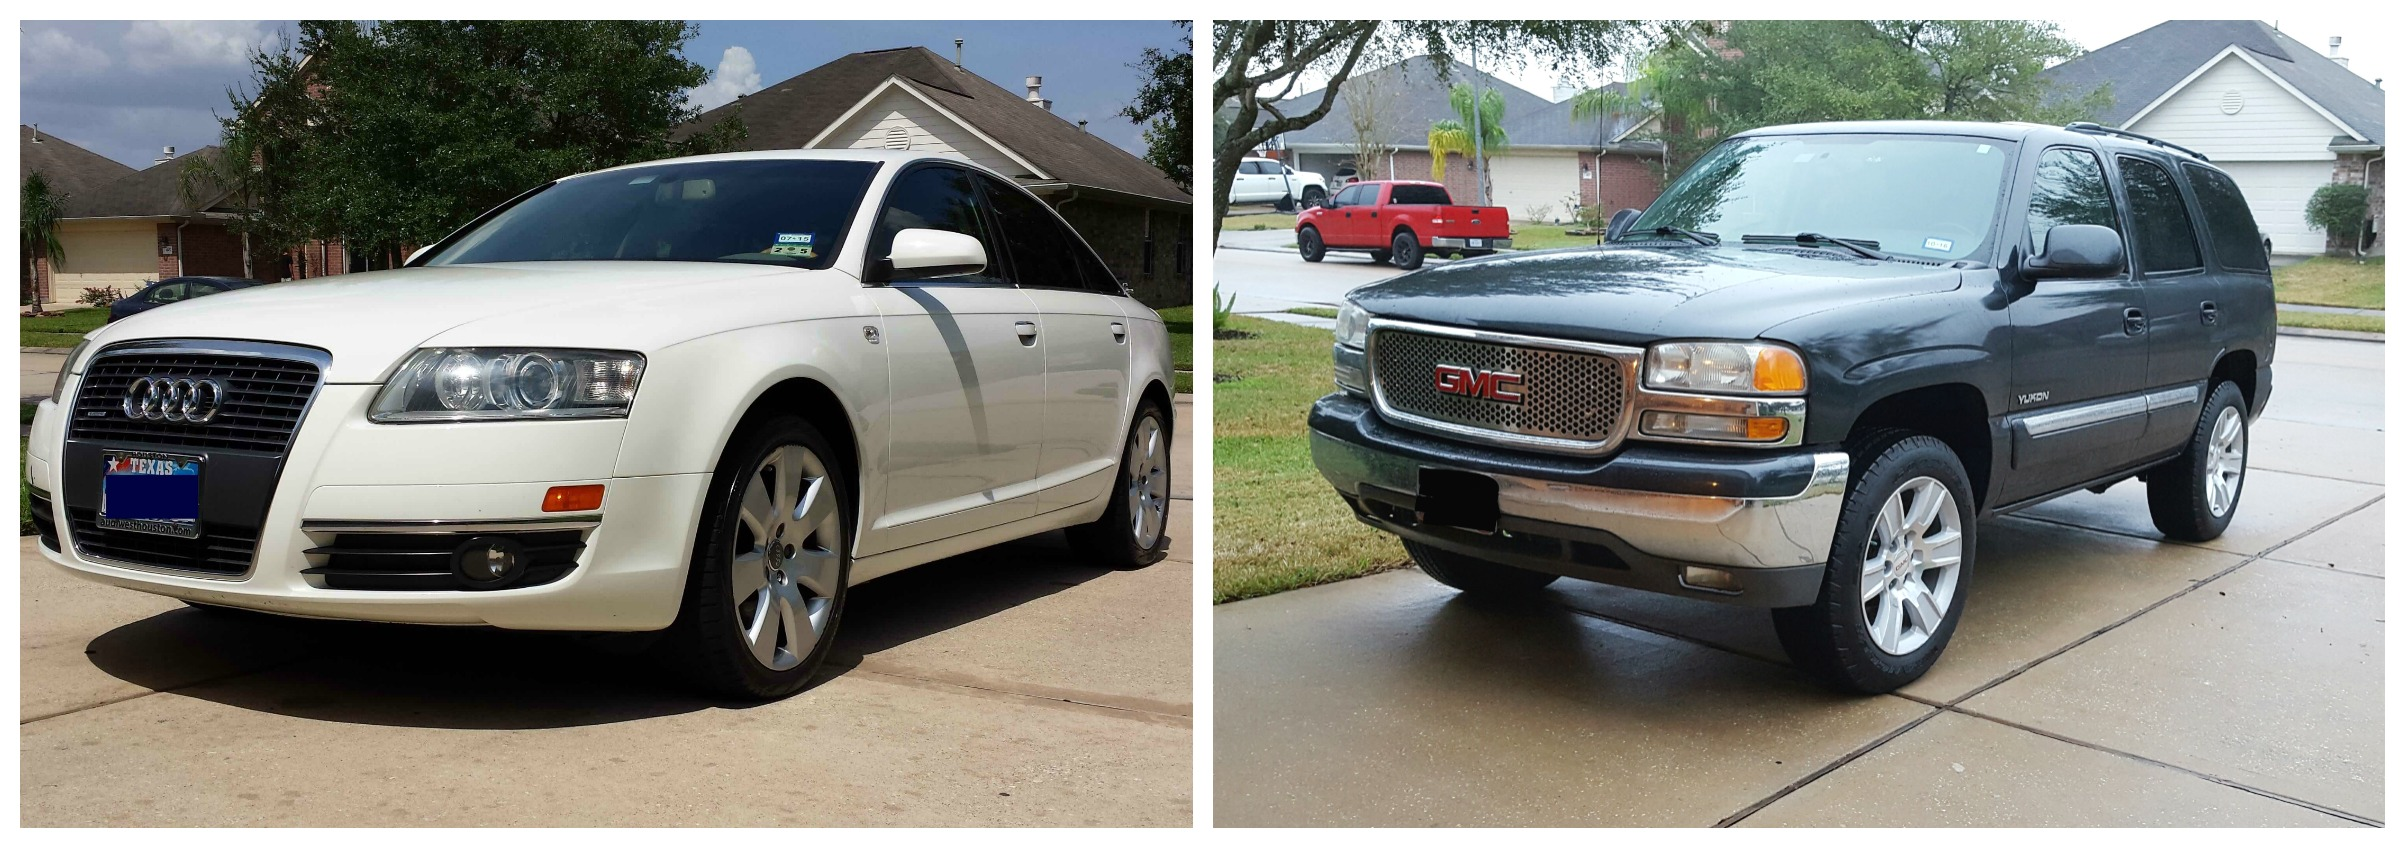 The car on the left had a payment and the car on the right is completely paid off!